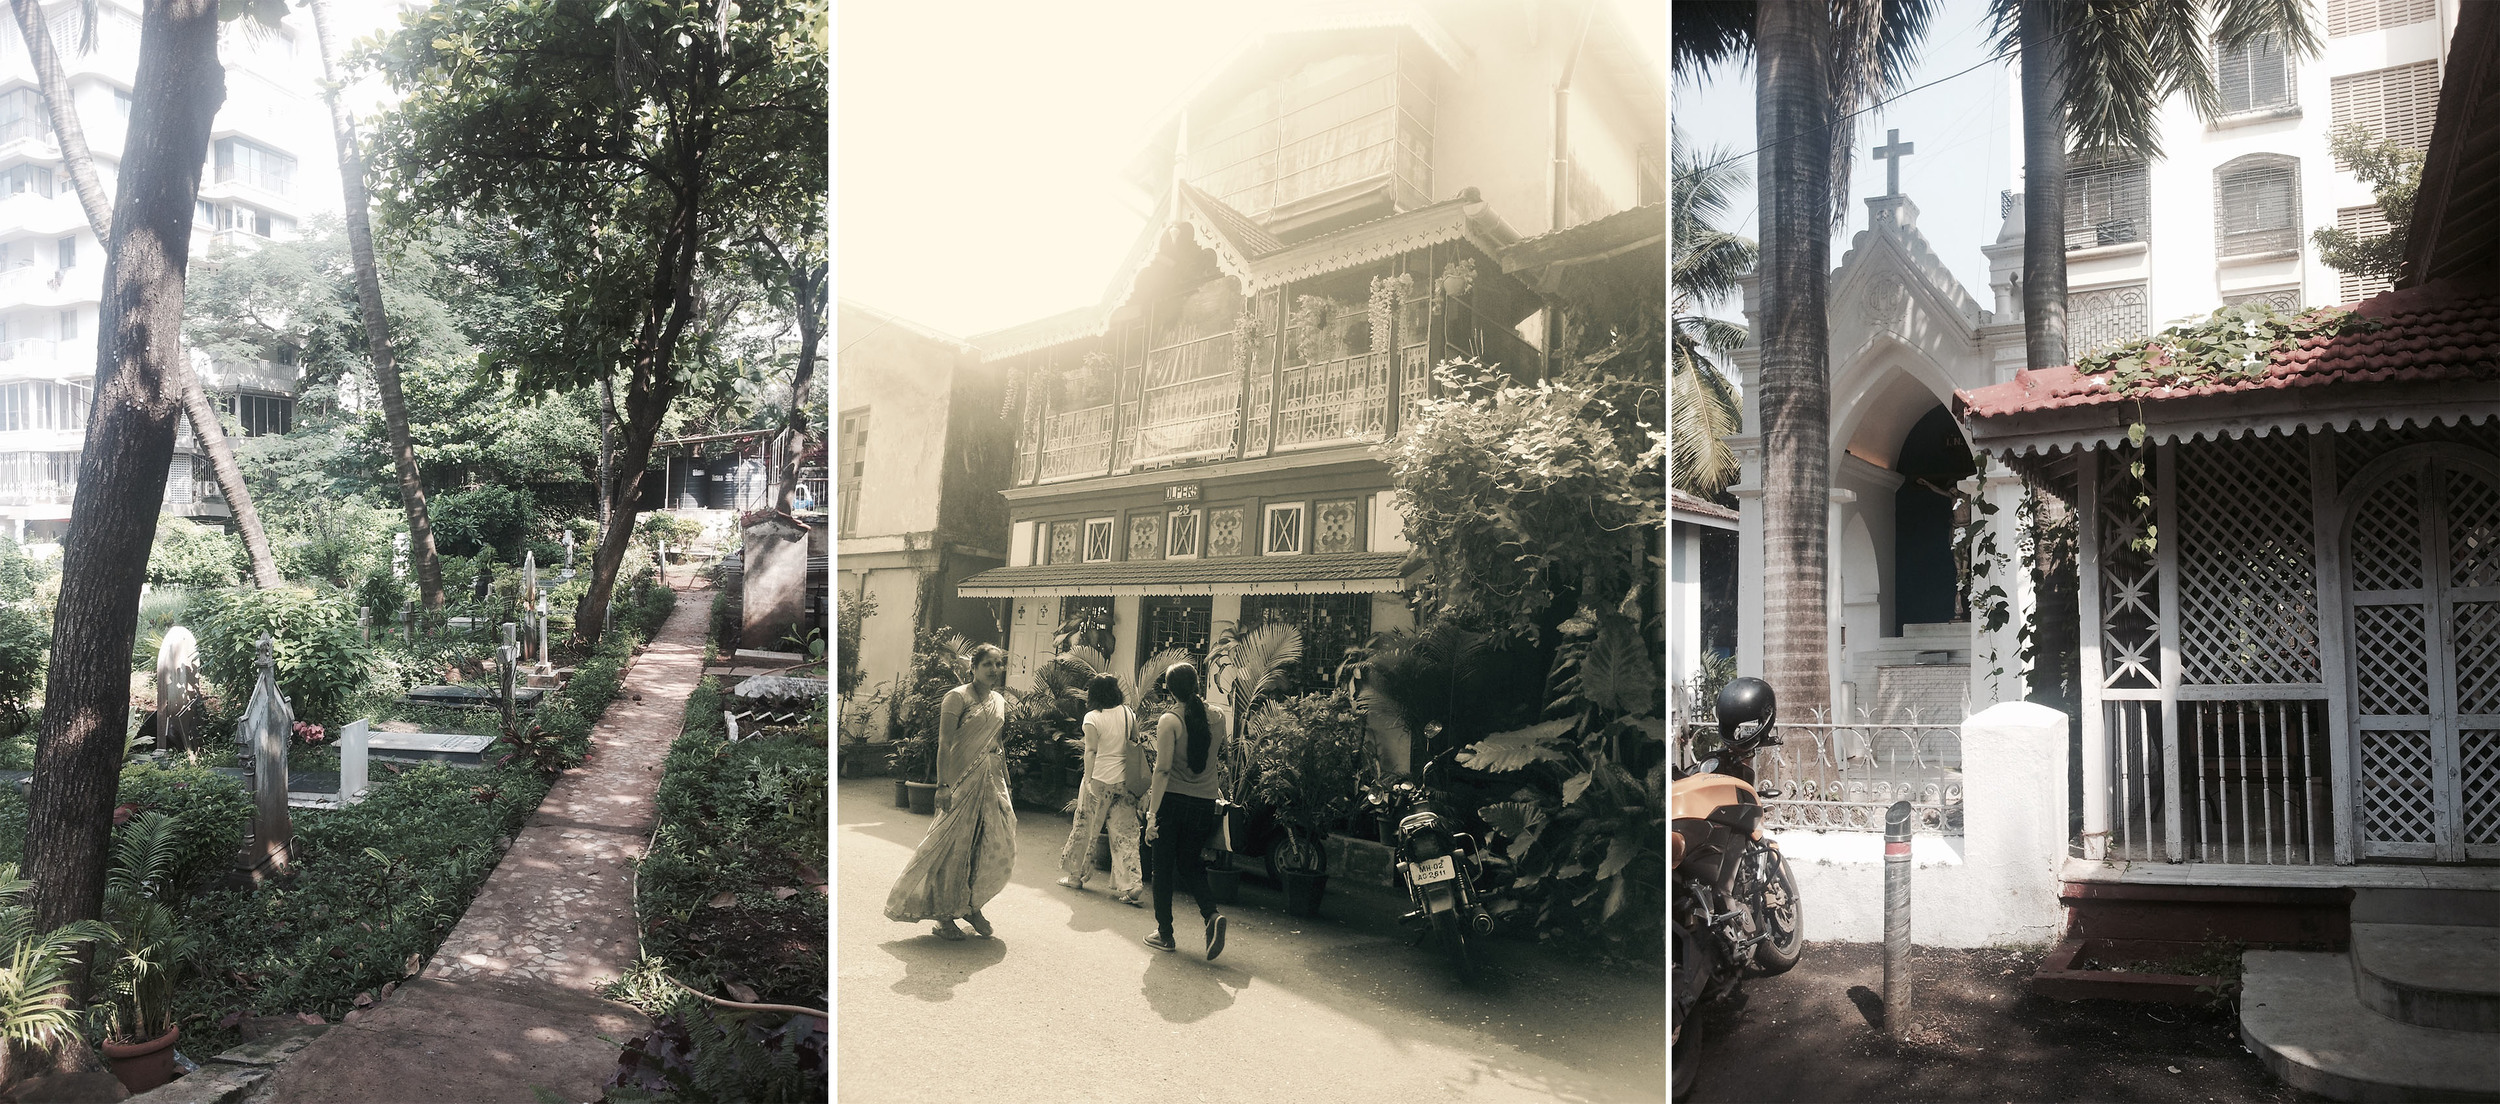 Cemetery at St. Stephen's Church  and some hidden gems around Bandra.